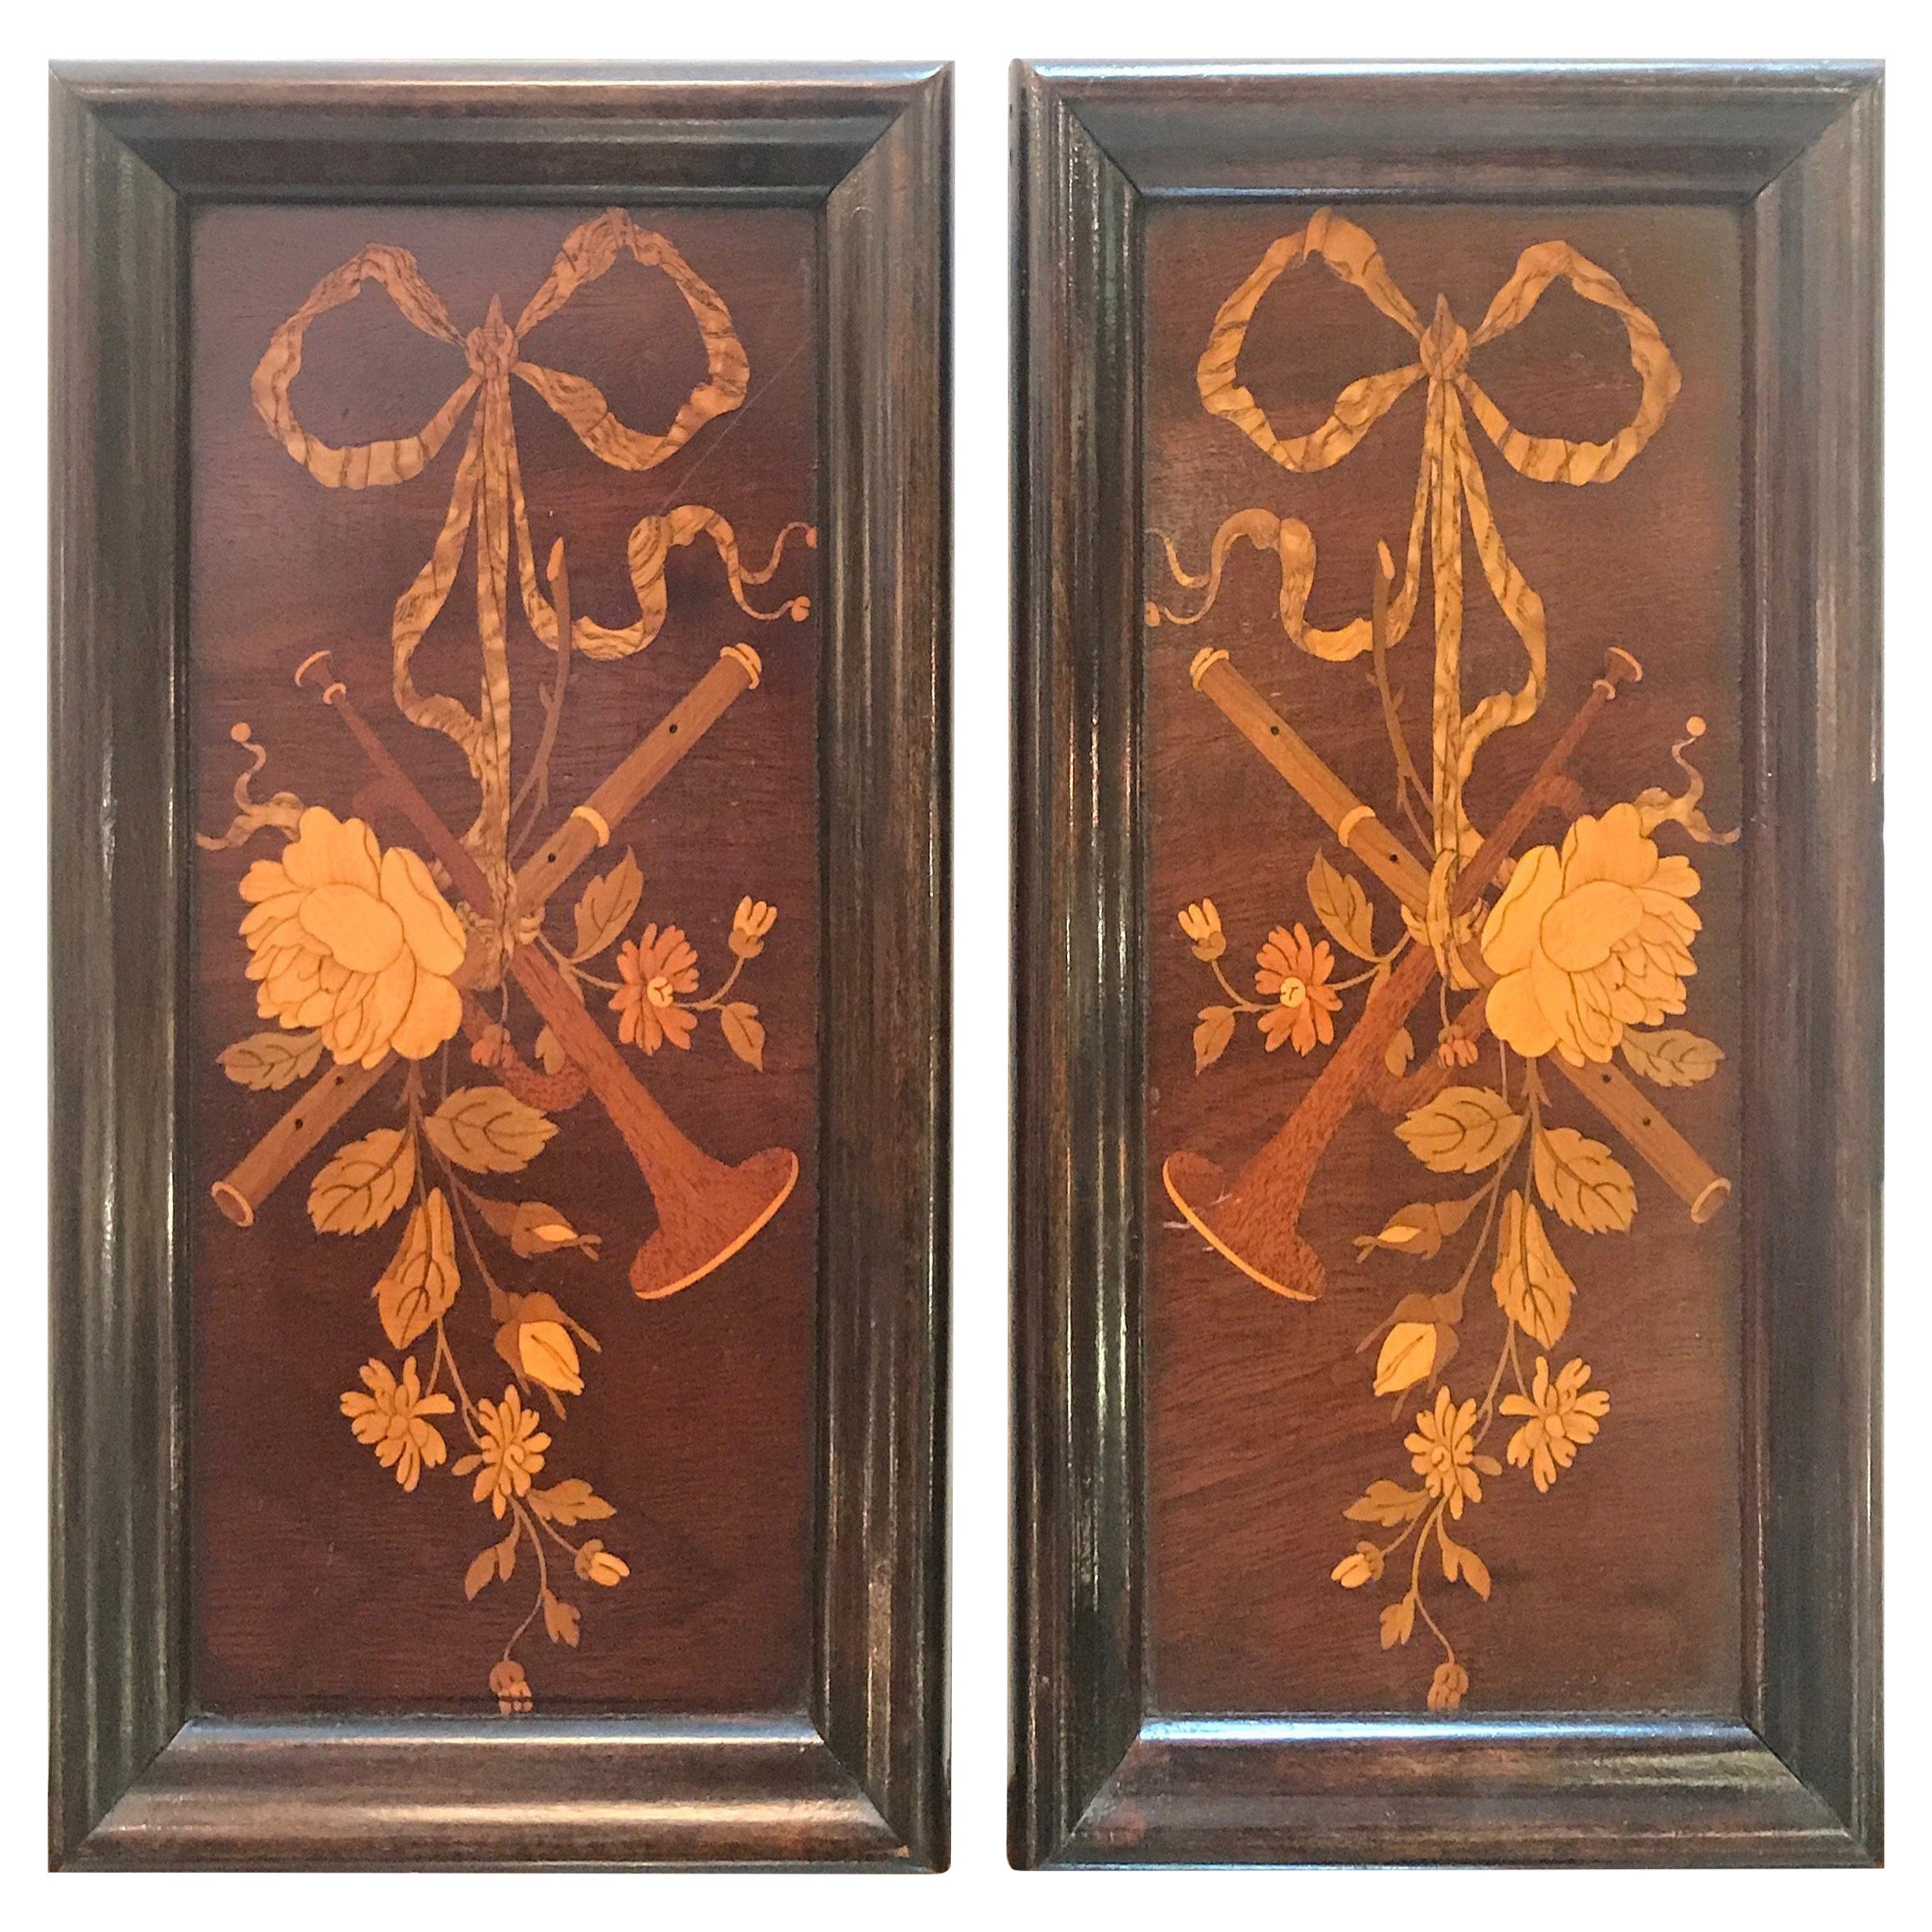 19th Century Diminutive Inlaid Wood Framed Panels